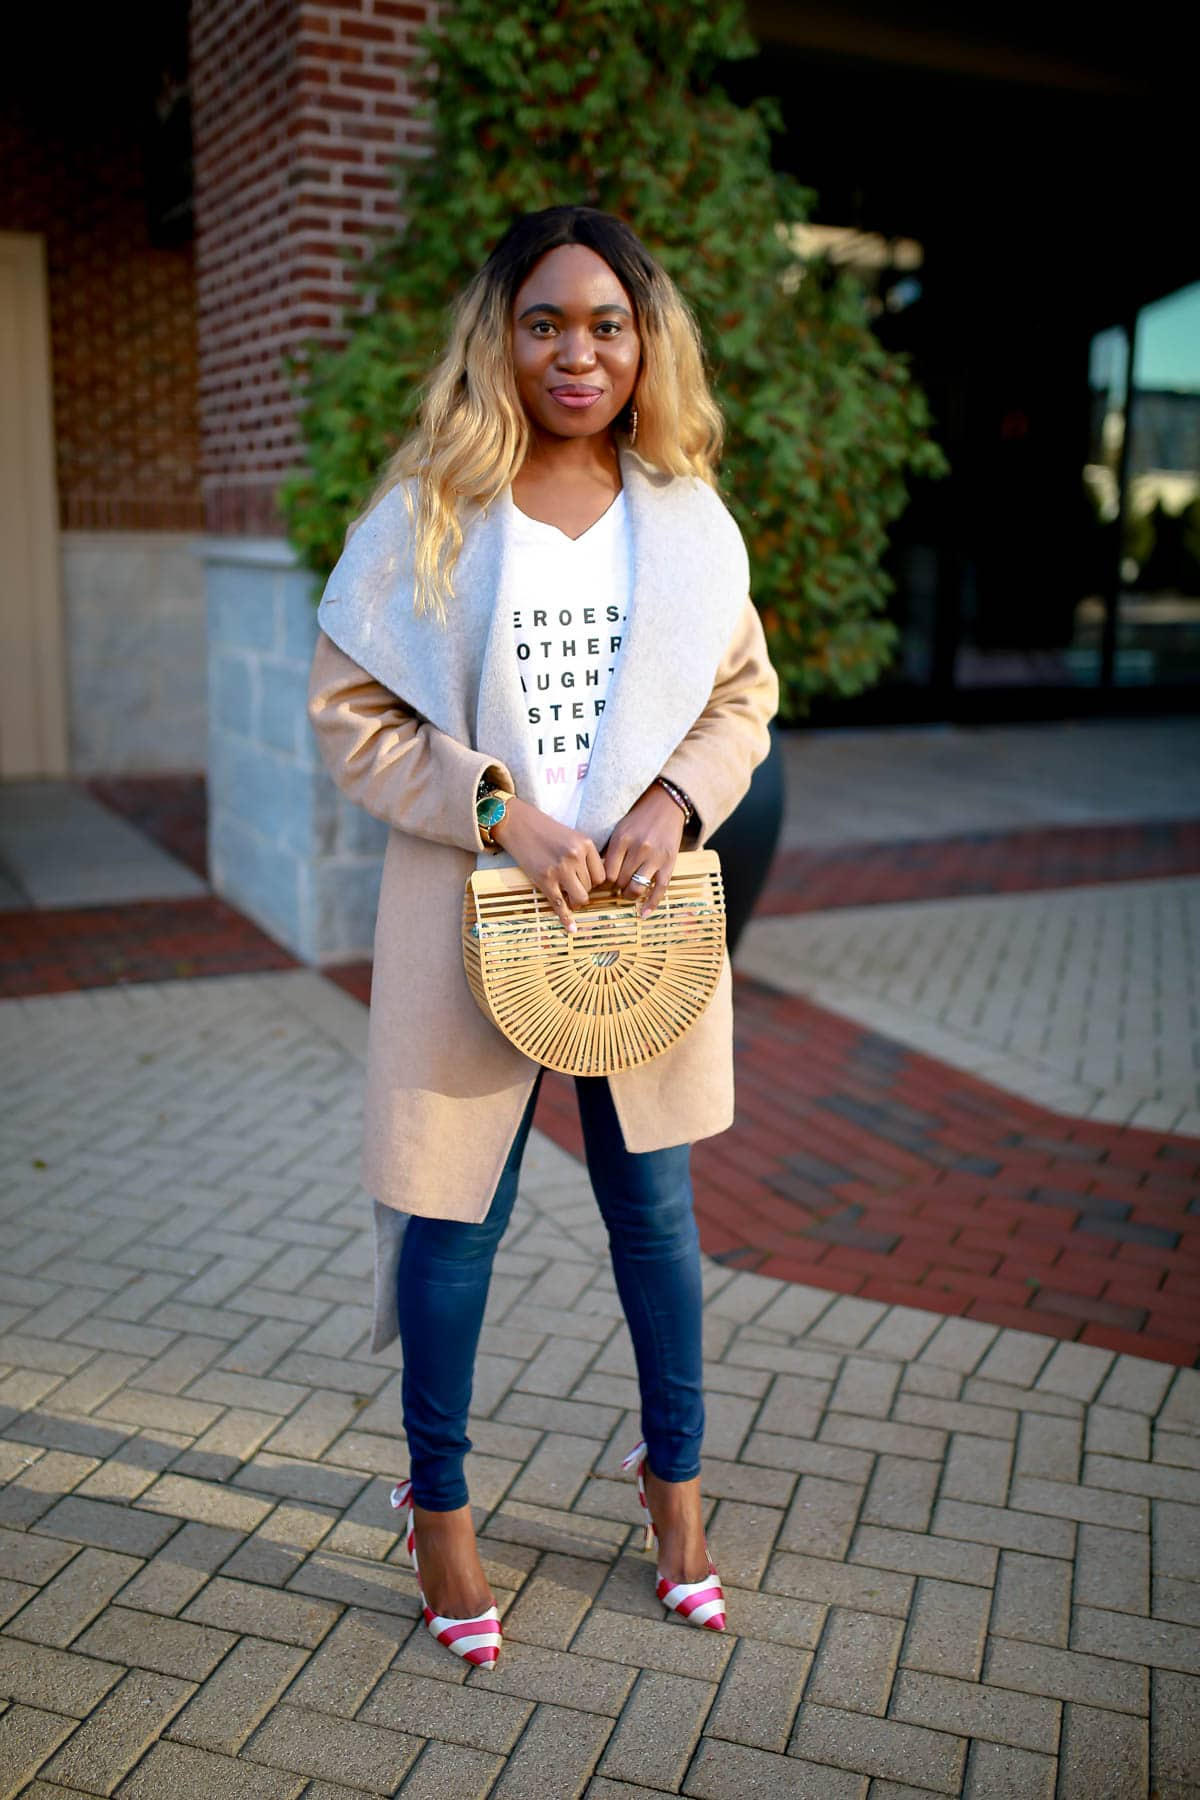 Fashion and lifestyle blogger, Louisa, shares how you can upgrade your denim and tee outfit with items you already have. And for fall, a trench coat or trendy wool jacket will keep you cozy and chic. Here's how!